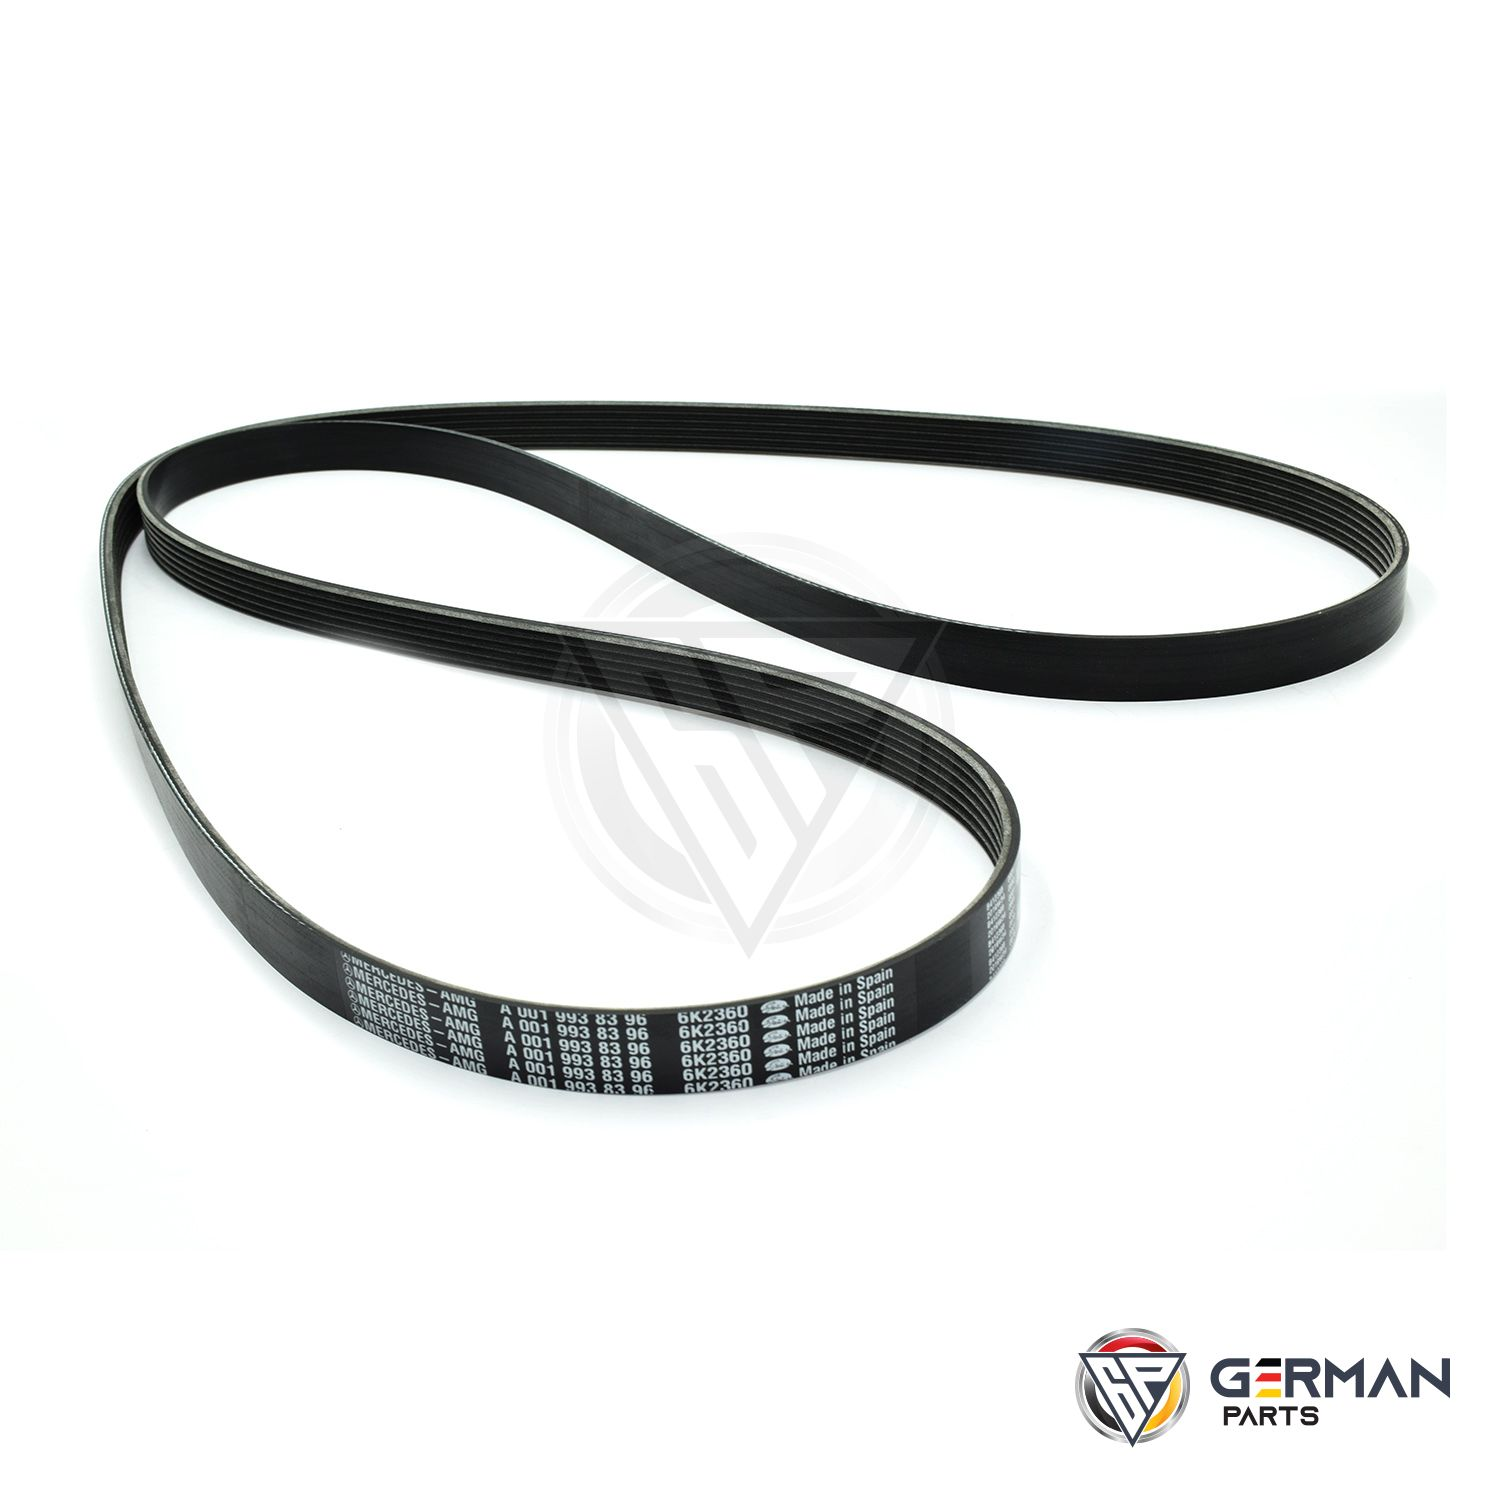 Buy Genuine Mercedes Benz V Belt 0019938396 - German Parts